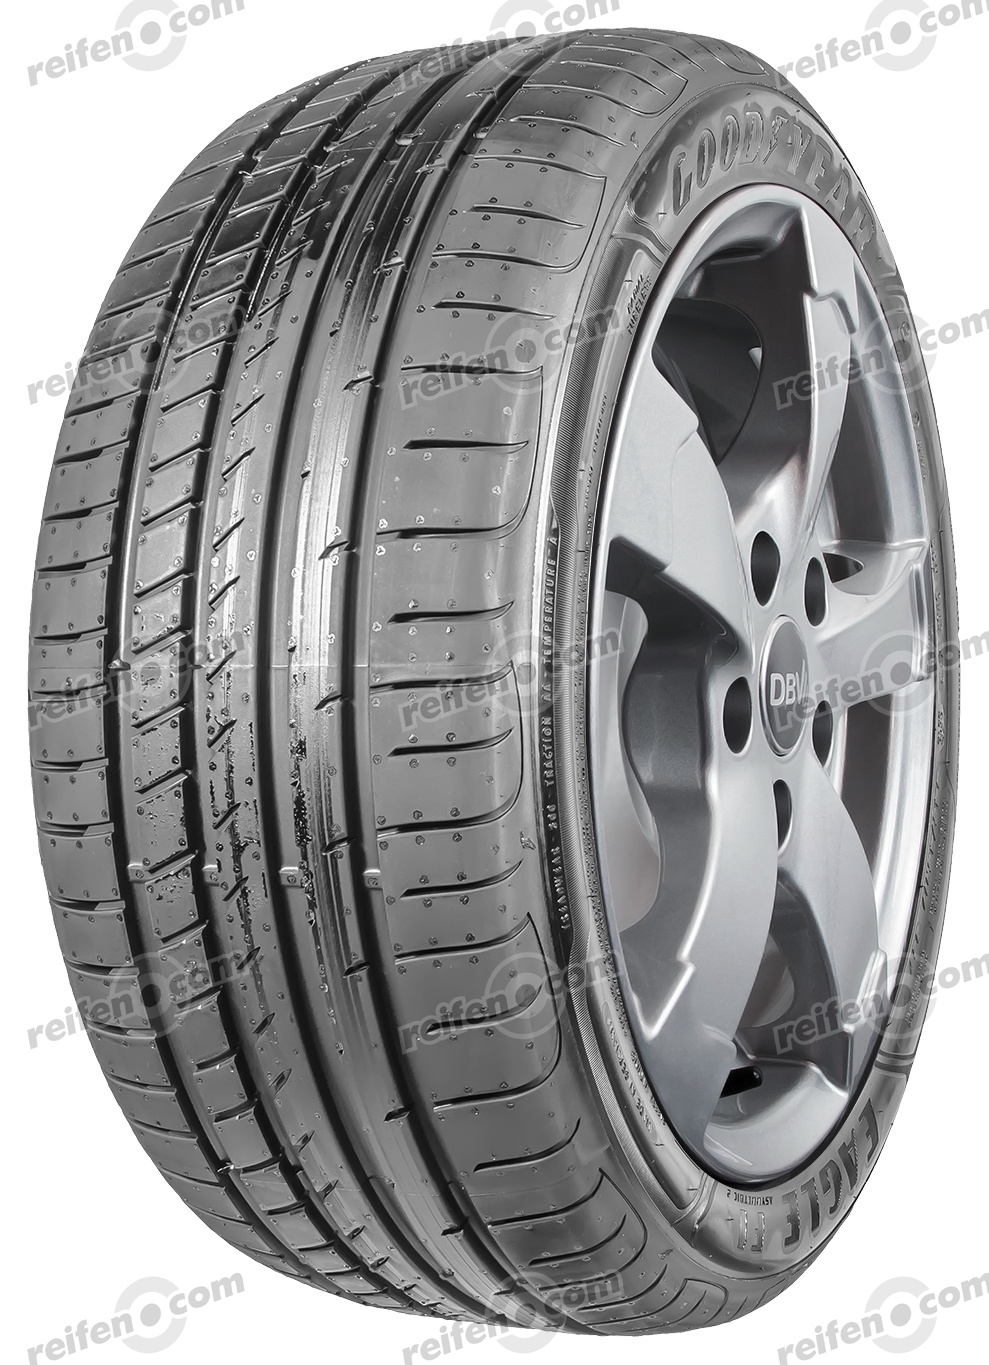 235/45 R18 98Y Eagle F1 Asymmetric 2 XL FP  Eagle F1 Asymmetric 2 XL FP